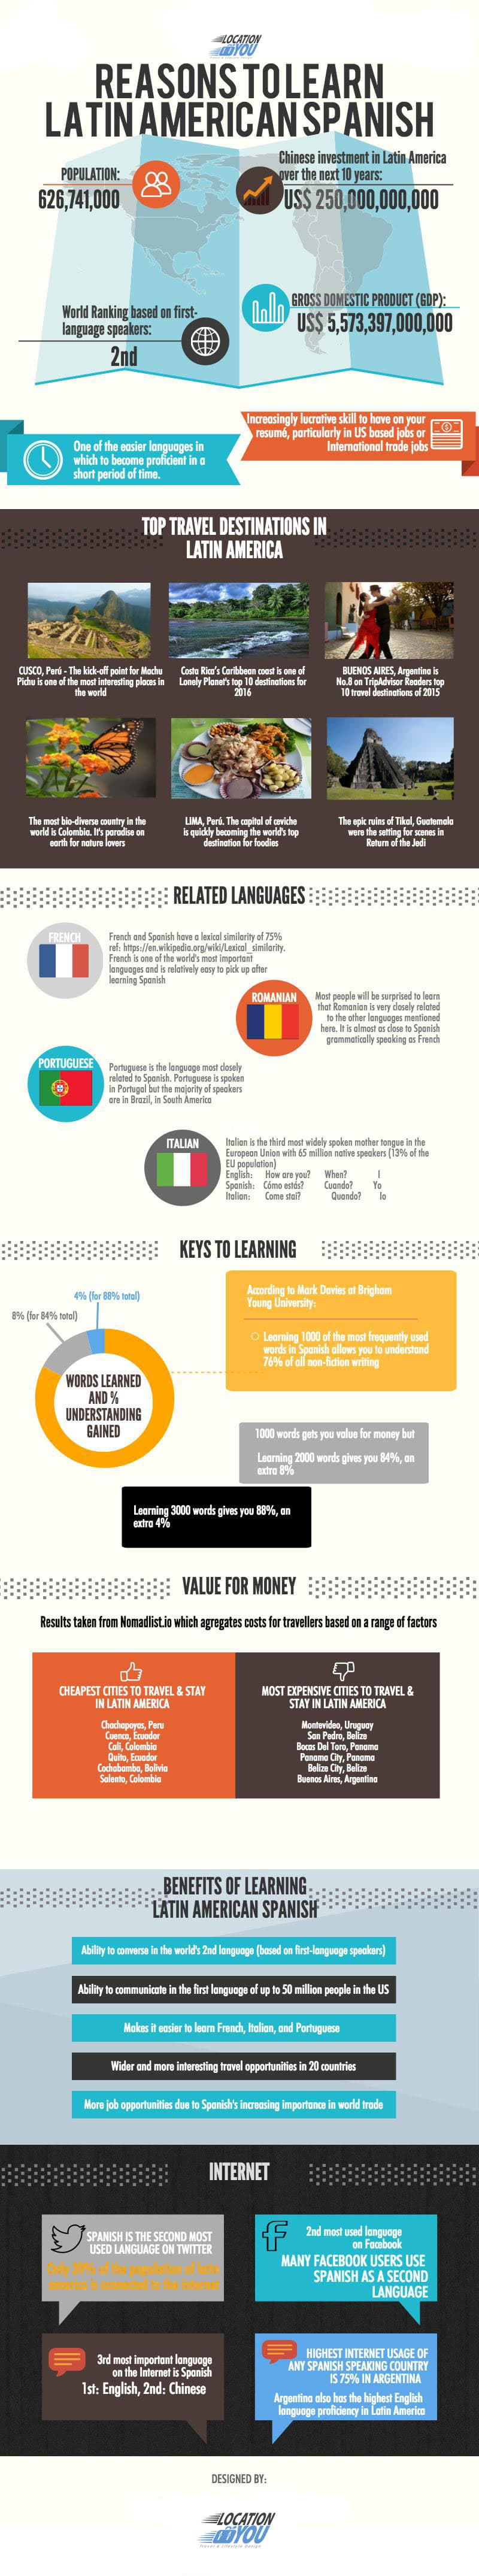 infographic - why learn Latin American Spanish